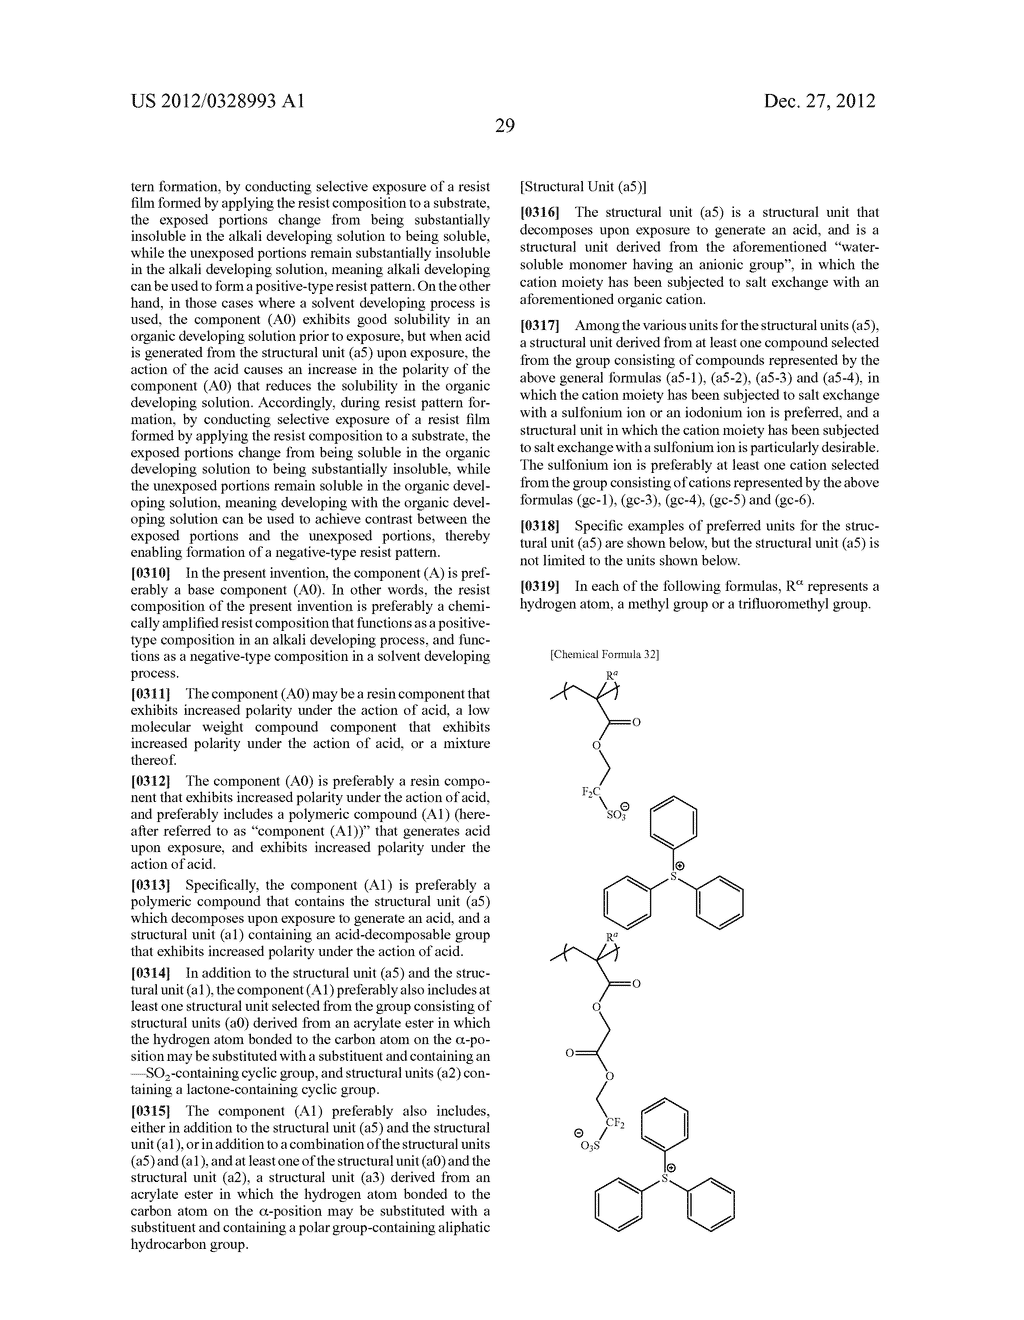 METHOD OF PRODUCING POLYMERIC COMPOUND, RESIST COMPOSITION, AND METHOD OF     FORMING RESIST PATTERN - diagram, schematic, and image 30